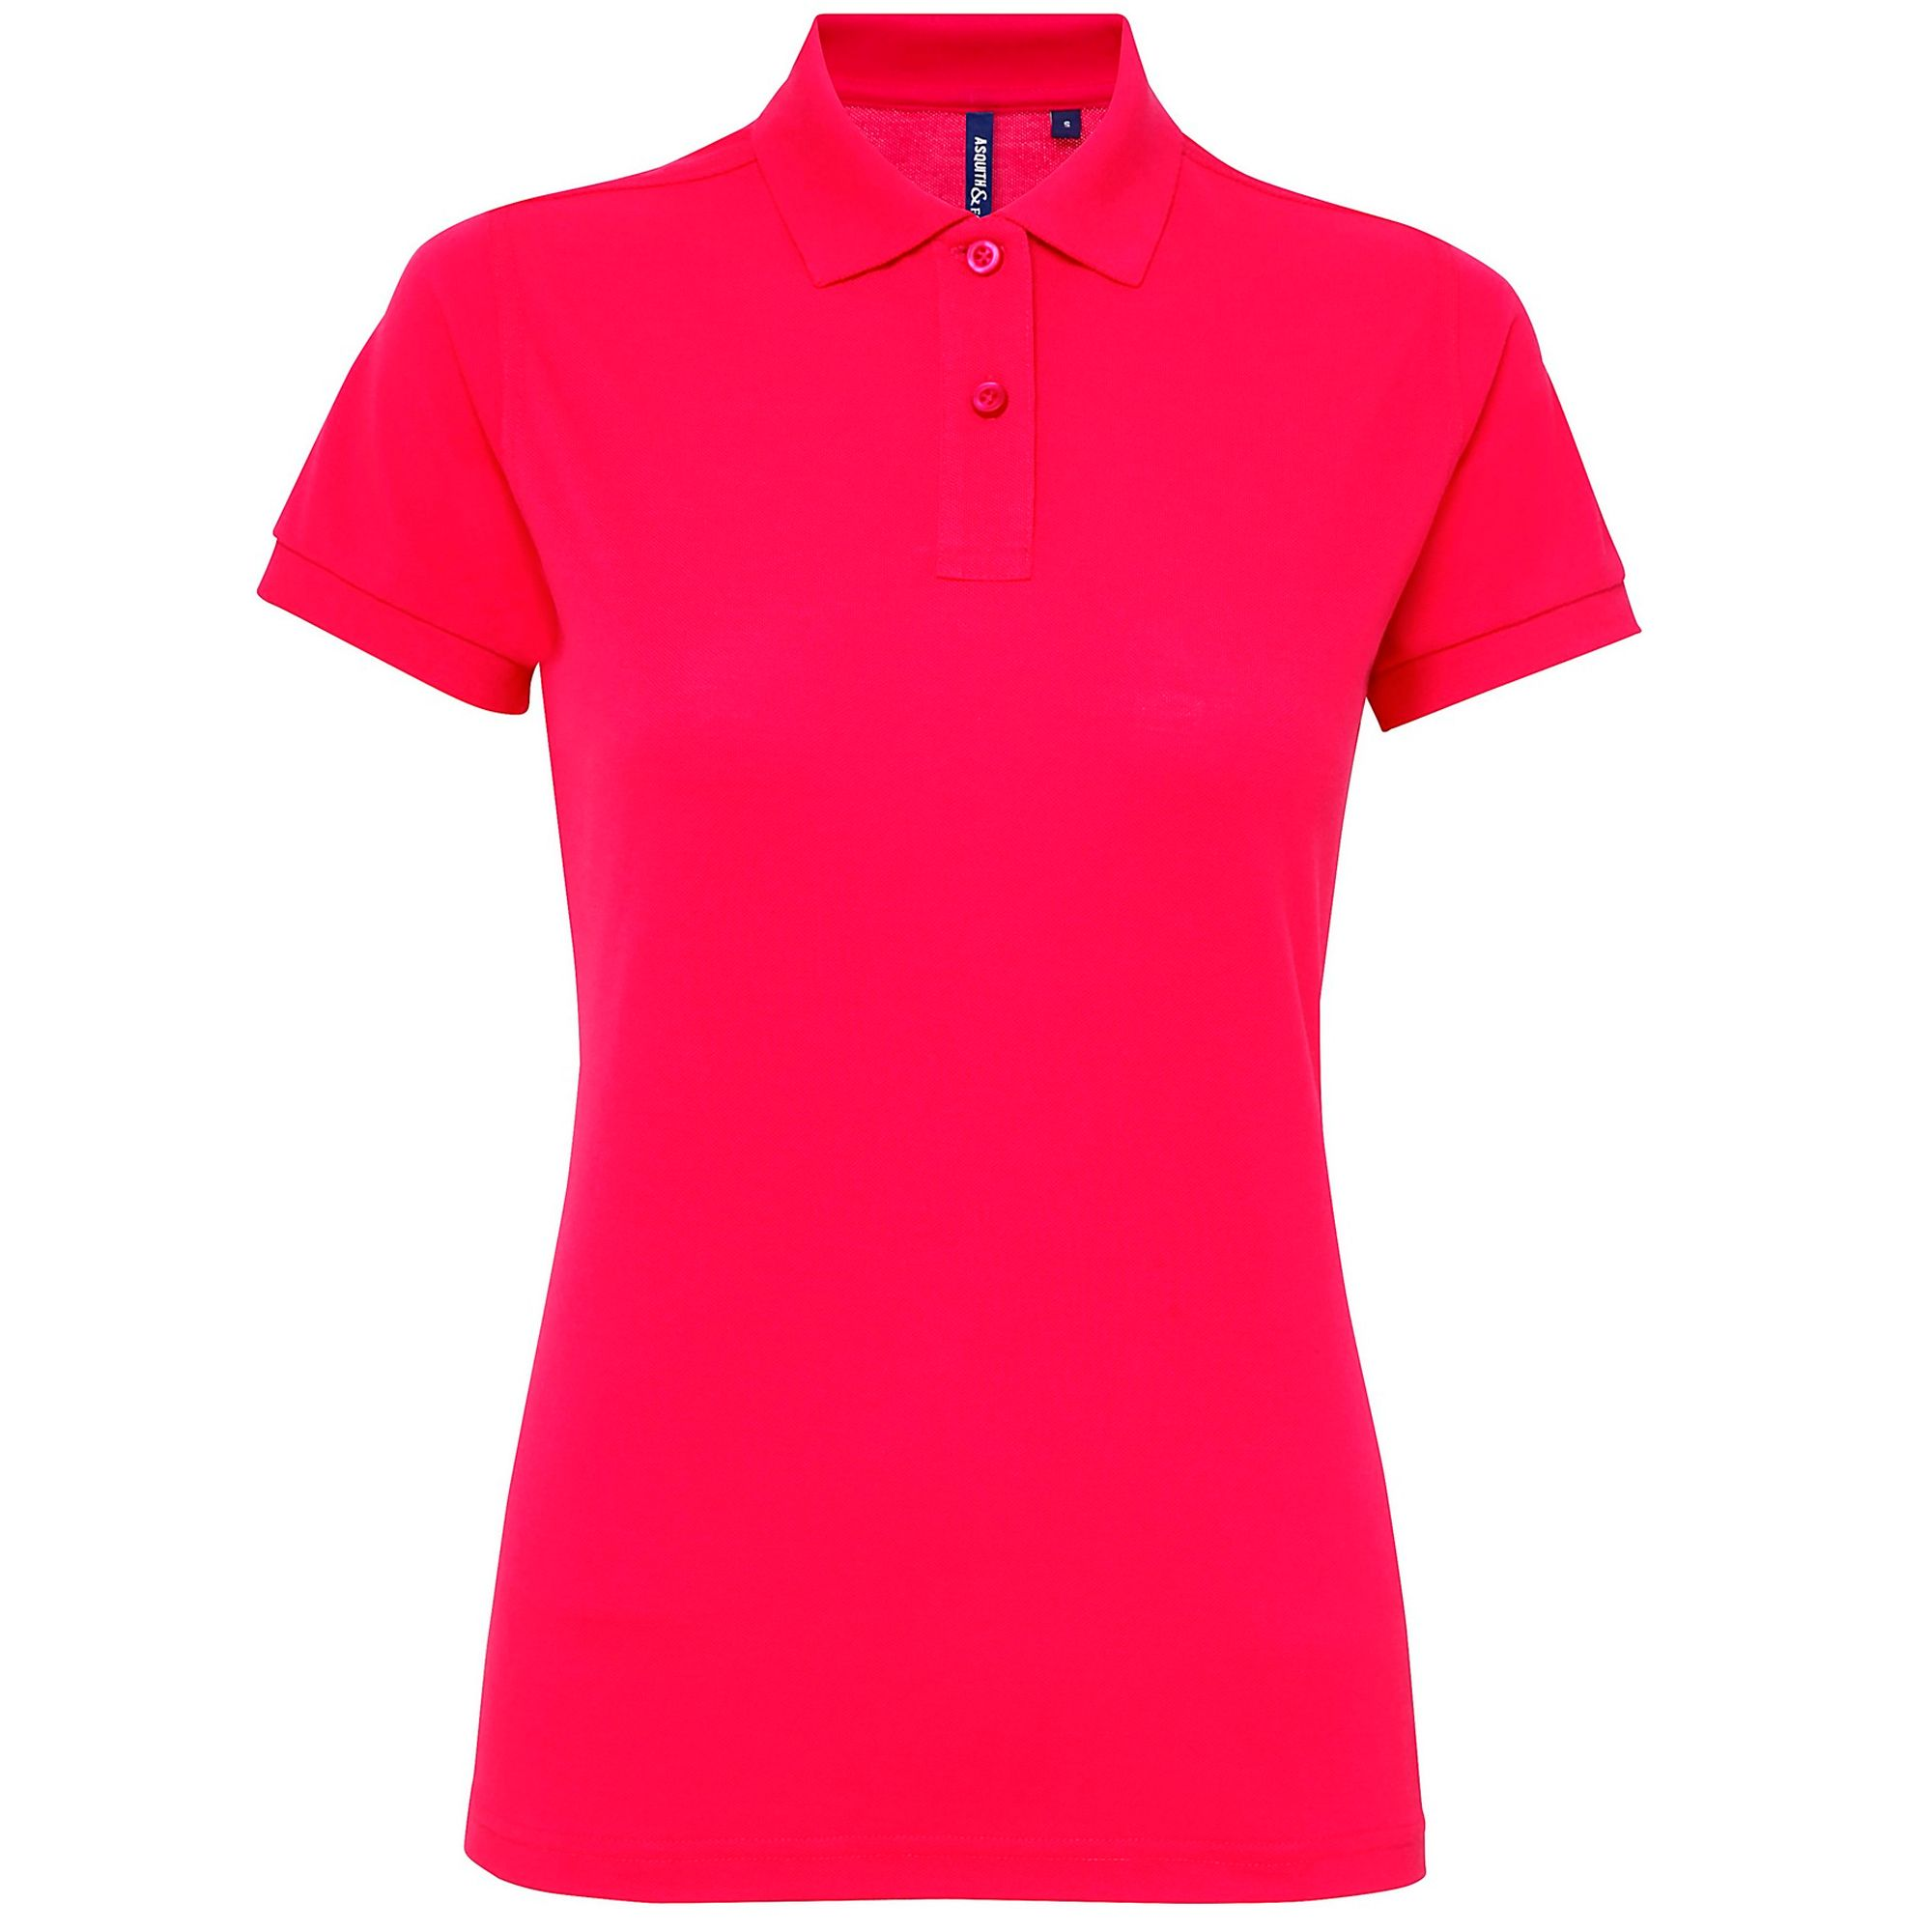 Asquith & Fox Womens/Ladies Short Sleeve Performance Blend Polo Shirt (Hot Pink)